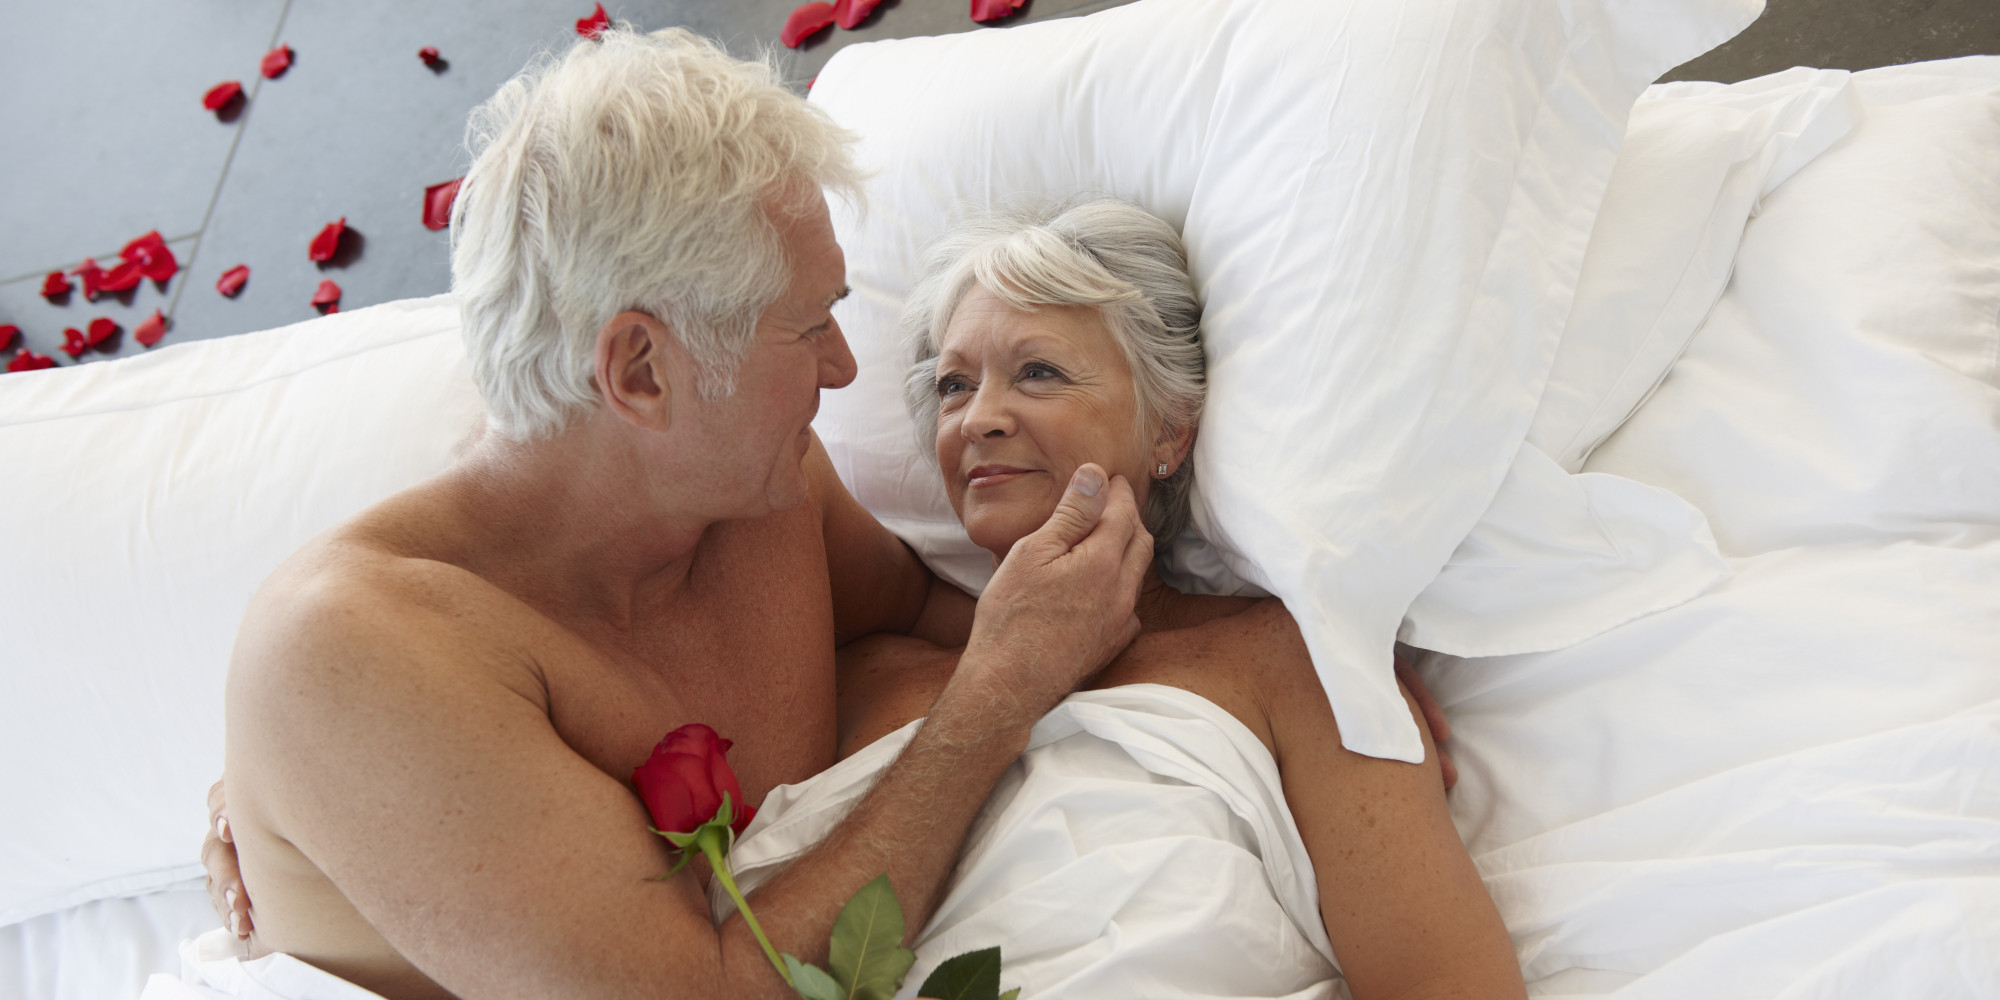 Old age men sex with women